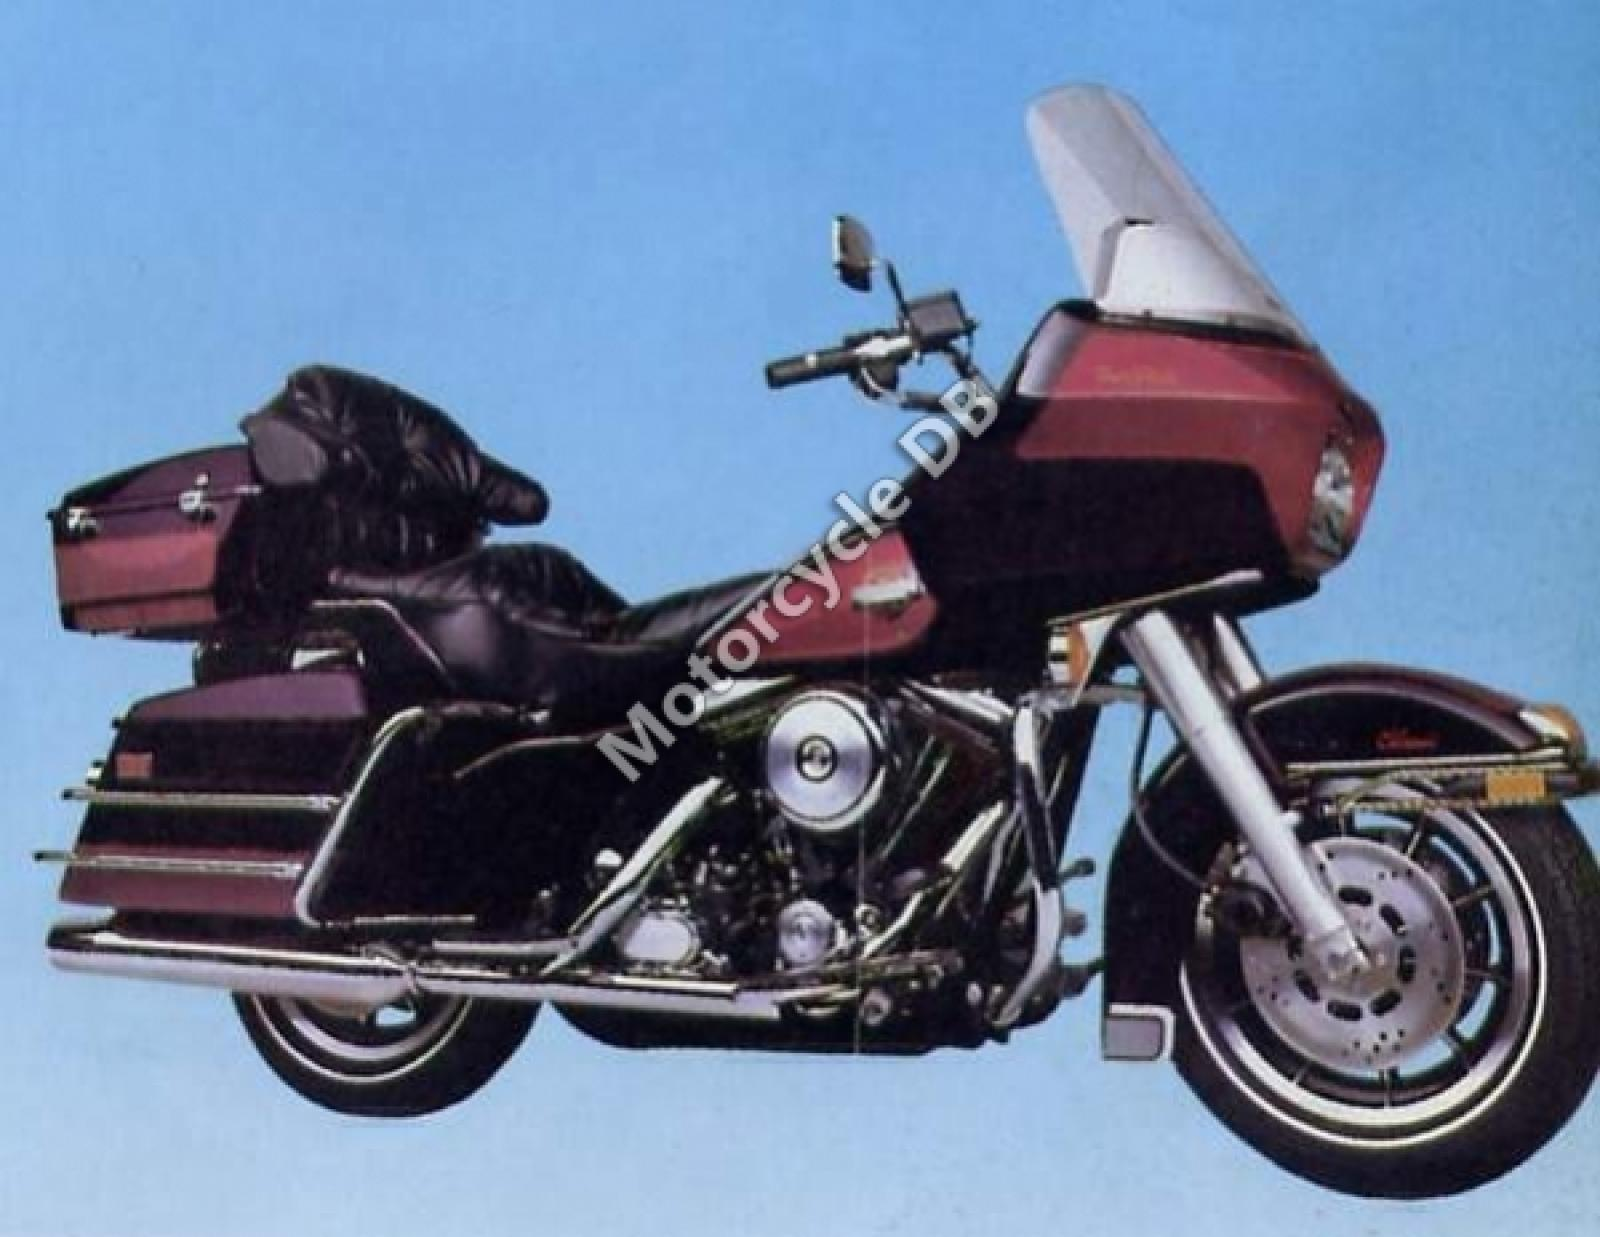 Harley-Davidson FLHTC 1340 Electra Glide Classic 1985 pics #15285